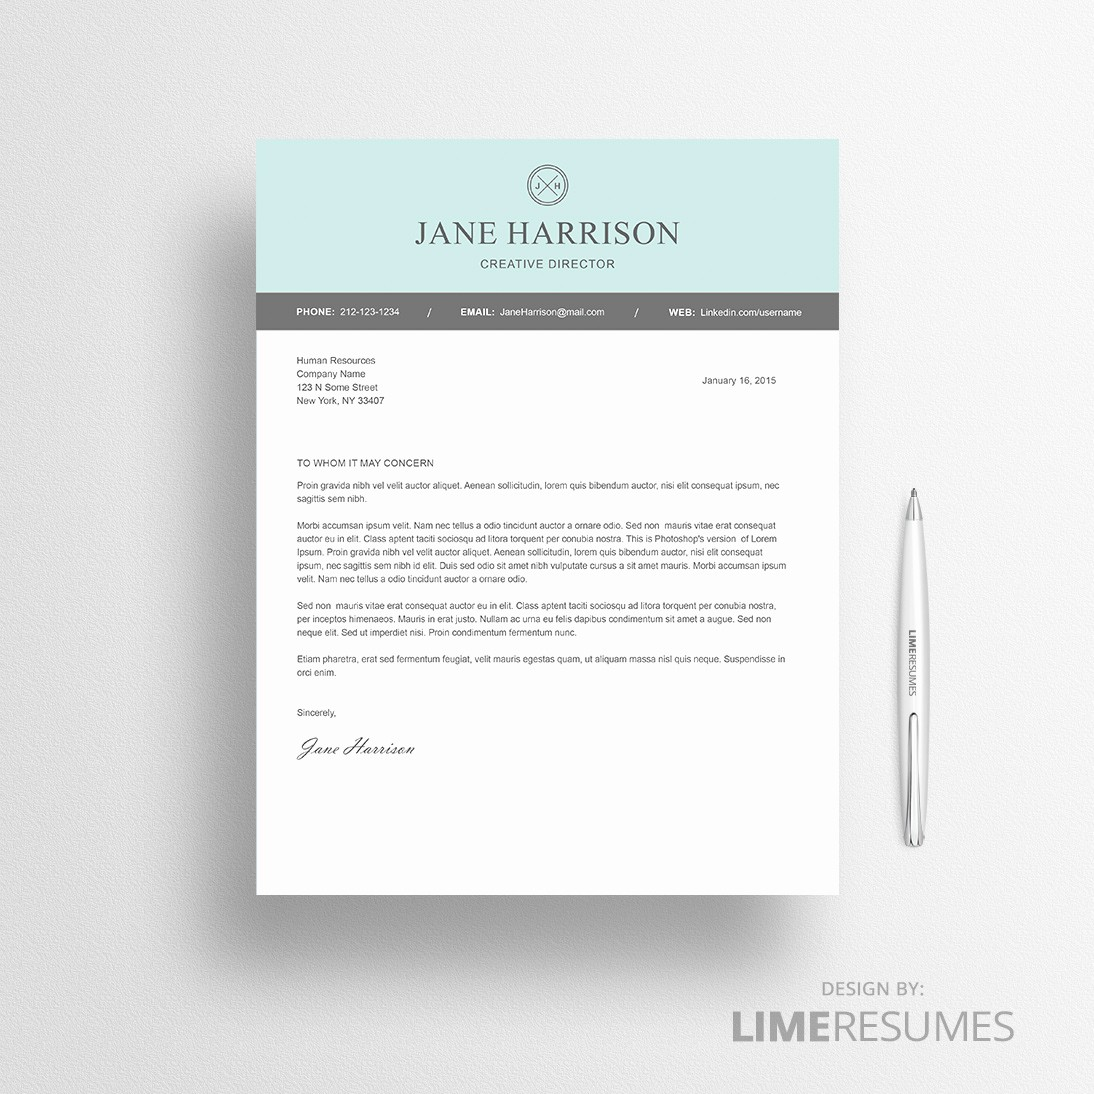 Template for Cover Letter Free Best Of Modern Resume Template for Microsoft Word Limeresumes